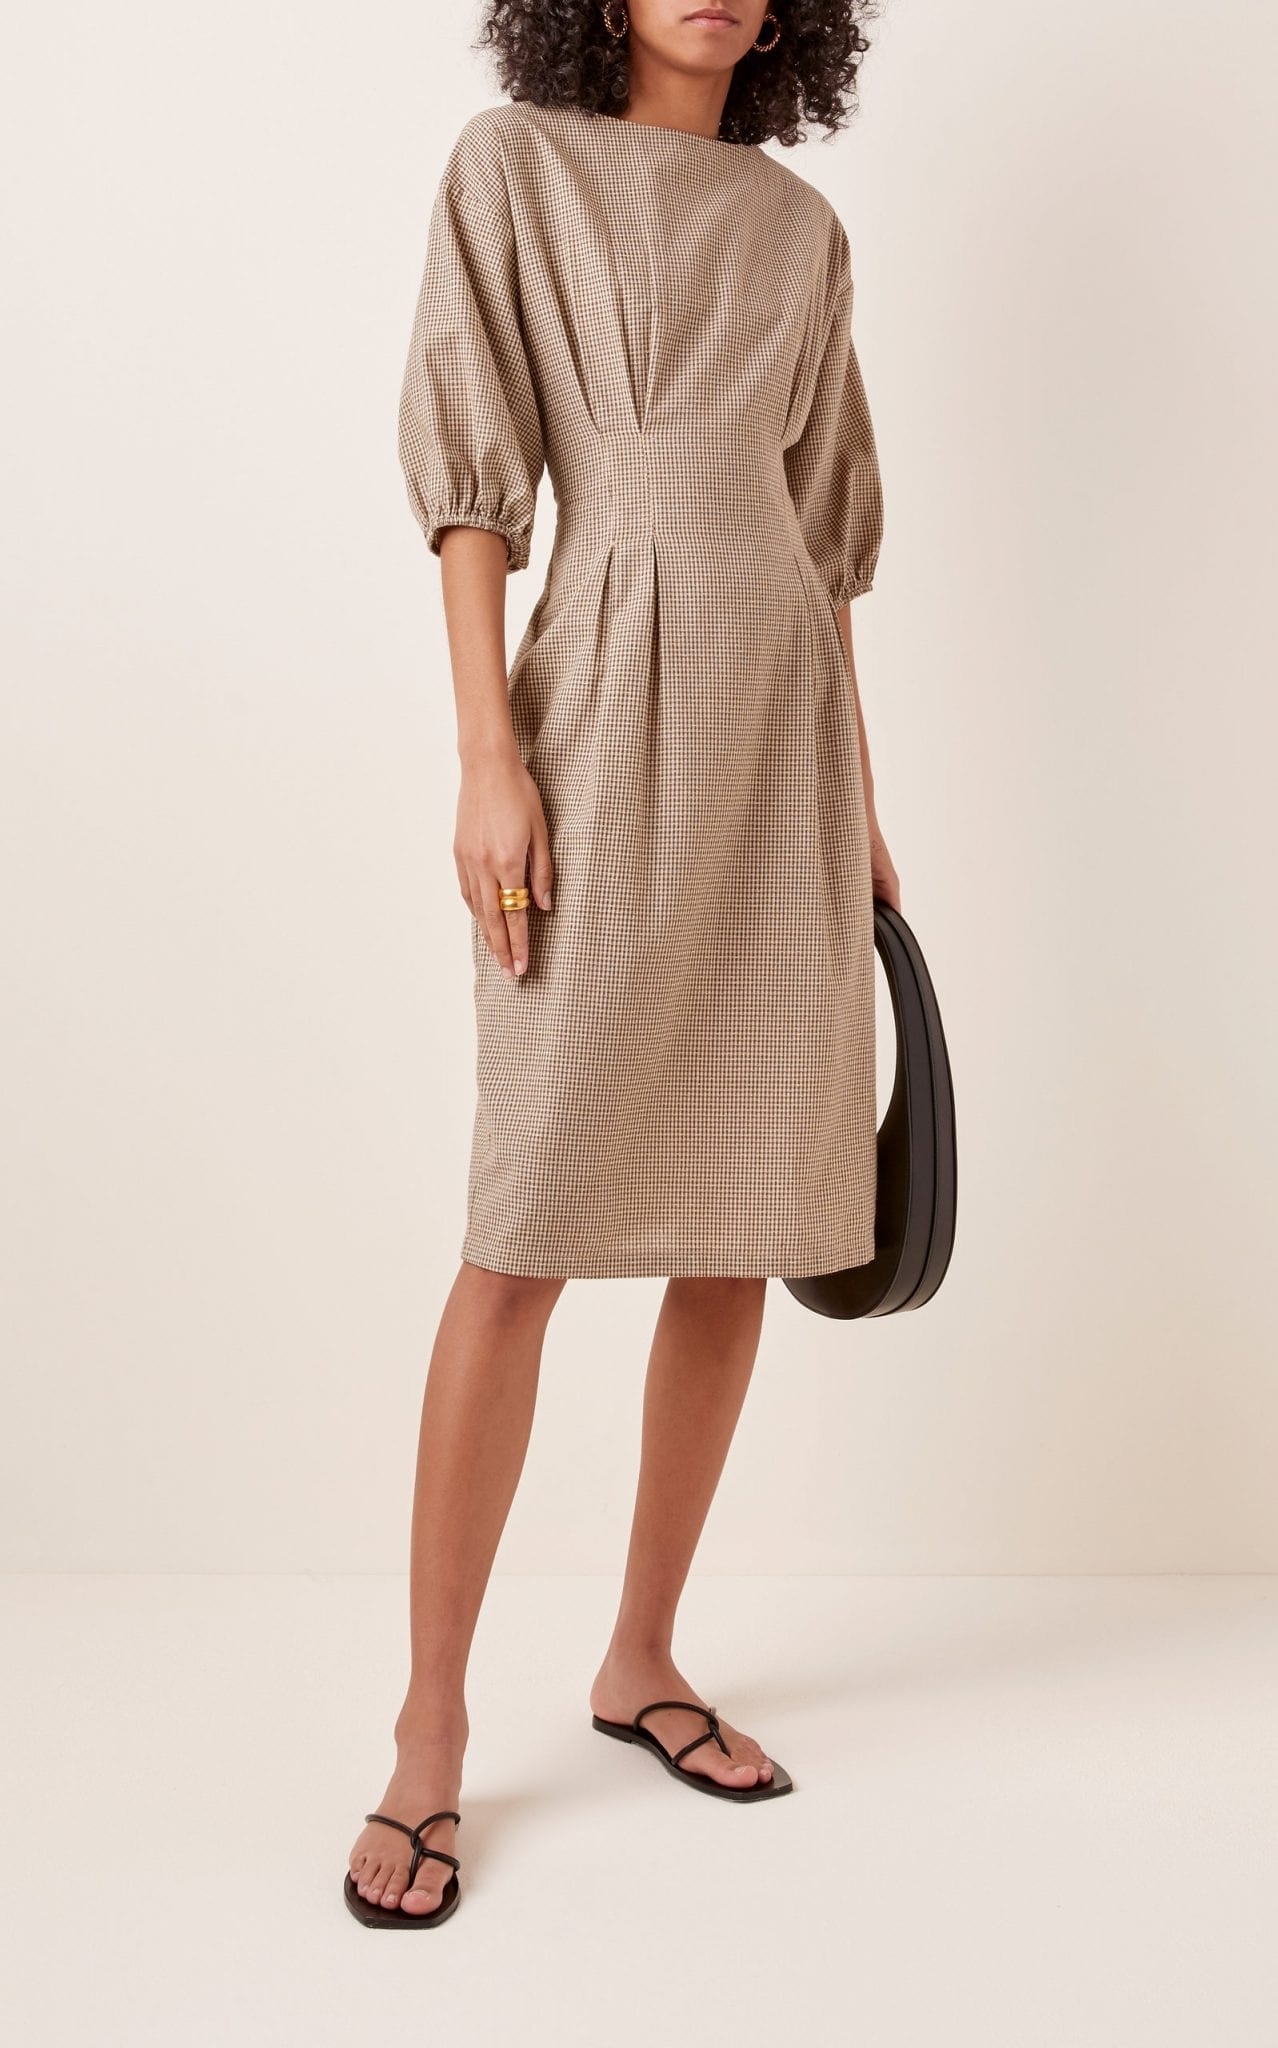 ST. AGNI Forme Cotton Knee-Length Dress